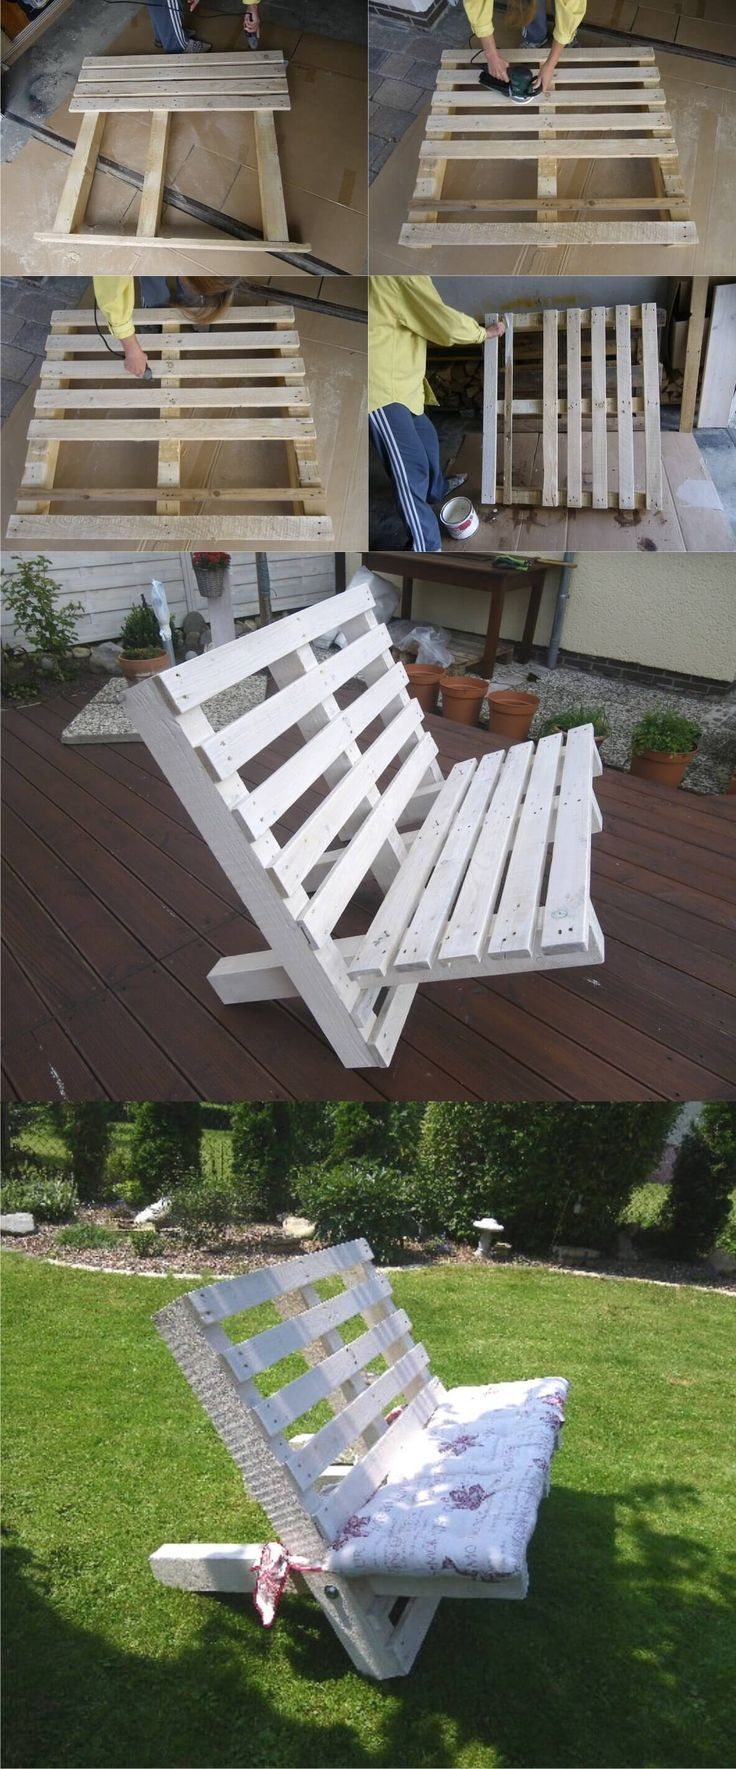 diy outdoor pallet furniture. A White Bench Created From Two Pallets Diy Outdoor Pallet Furniture